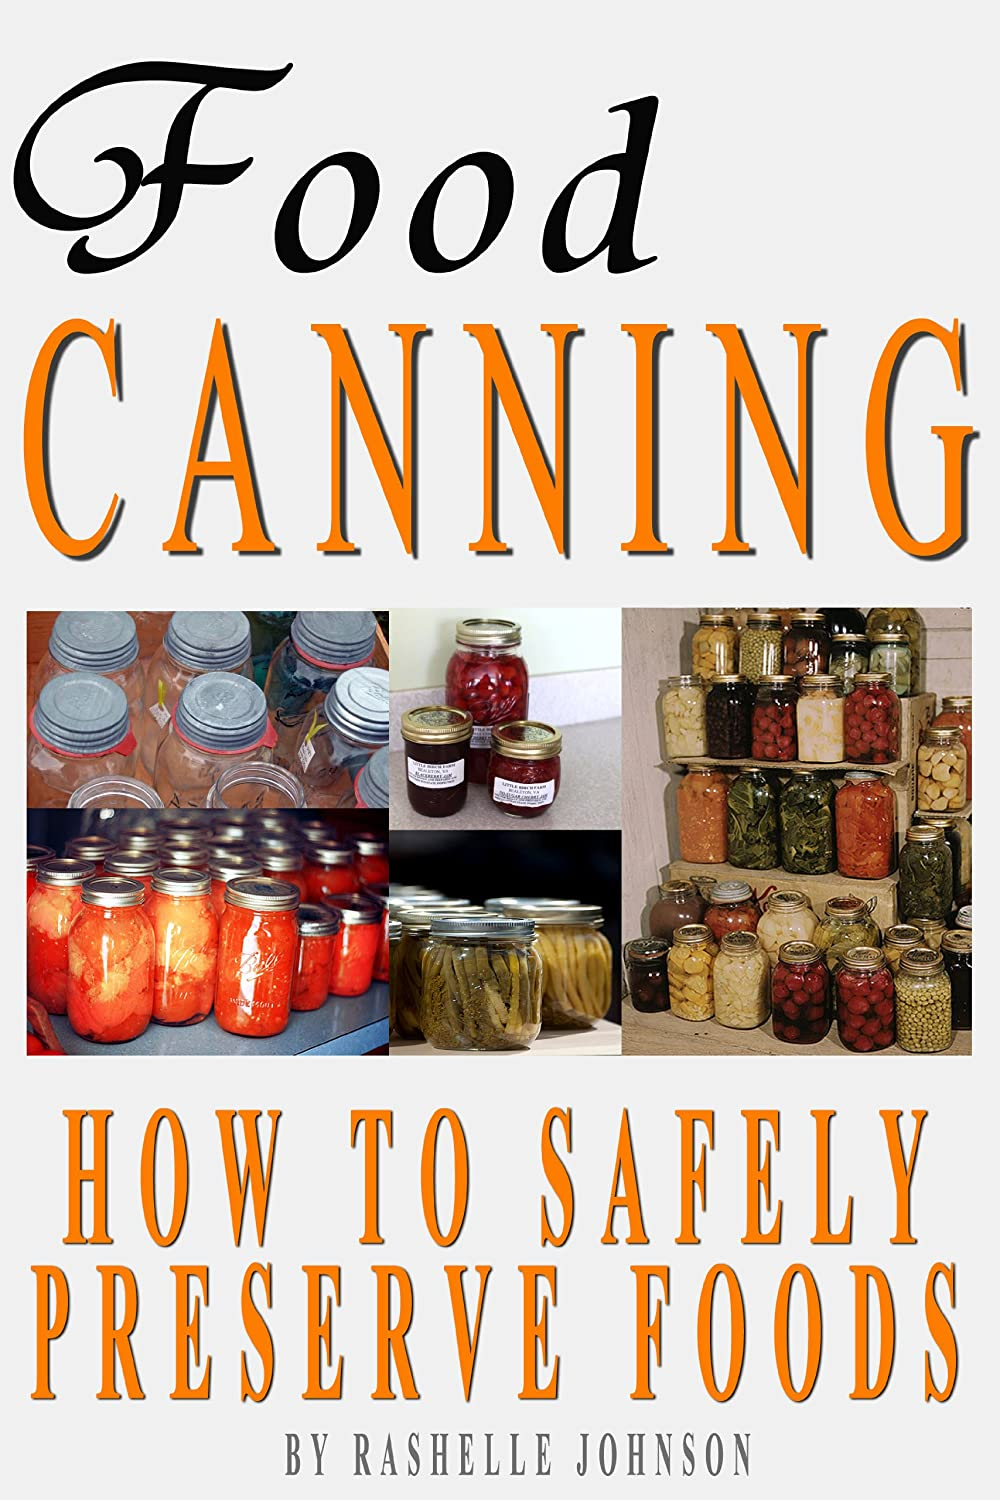 http://www.amazon.com/Food-Canning-Safely-Preserve-Foods-ebook/dp/B009RYMTR2/ref=as_sl_pc_ss_til?tag=lettfromahome-20&linkCode=w01&linkId=Z25CBWZTUVE3USU6&creativeASIN=B009RYMTR2